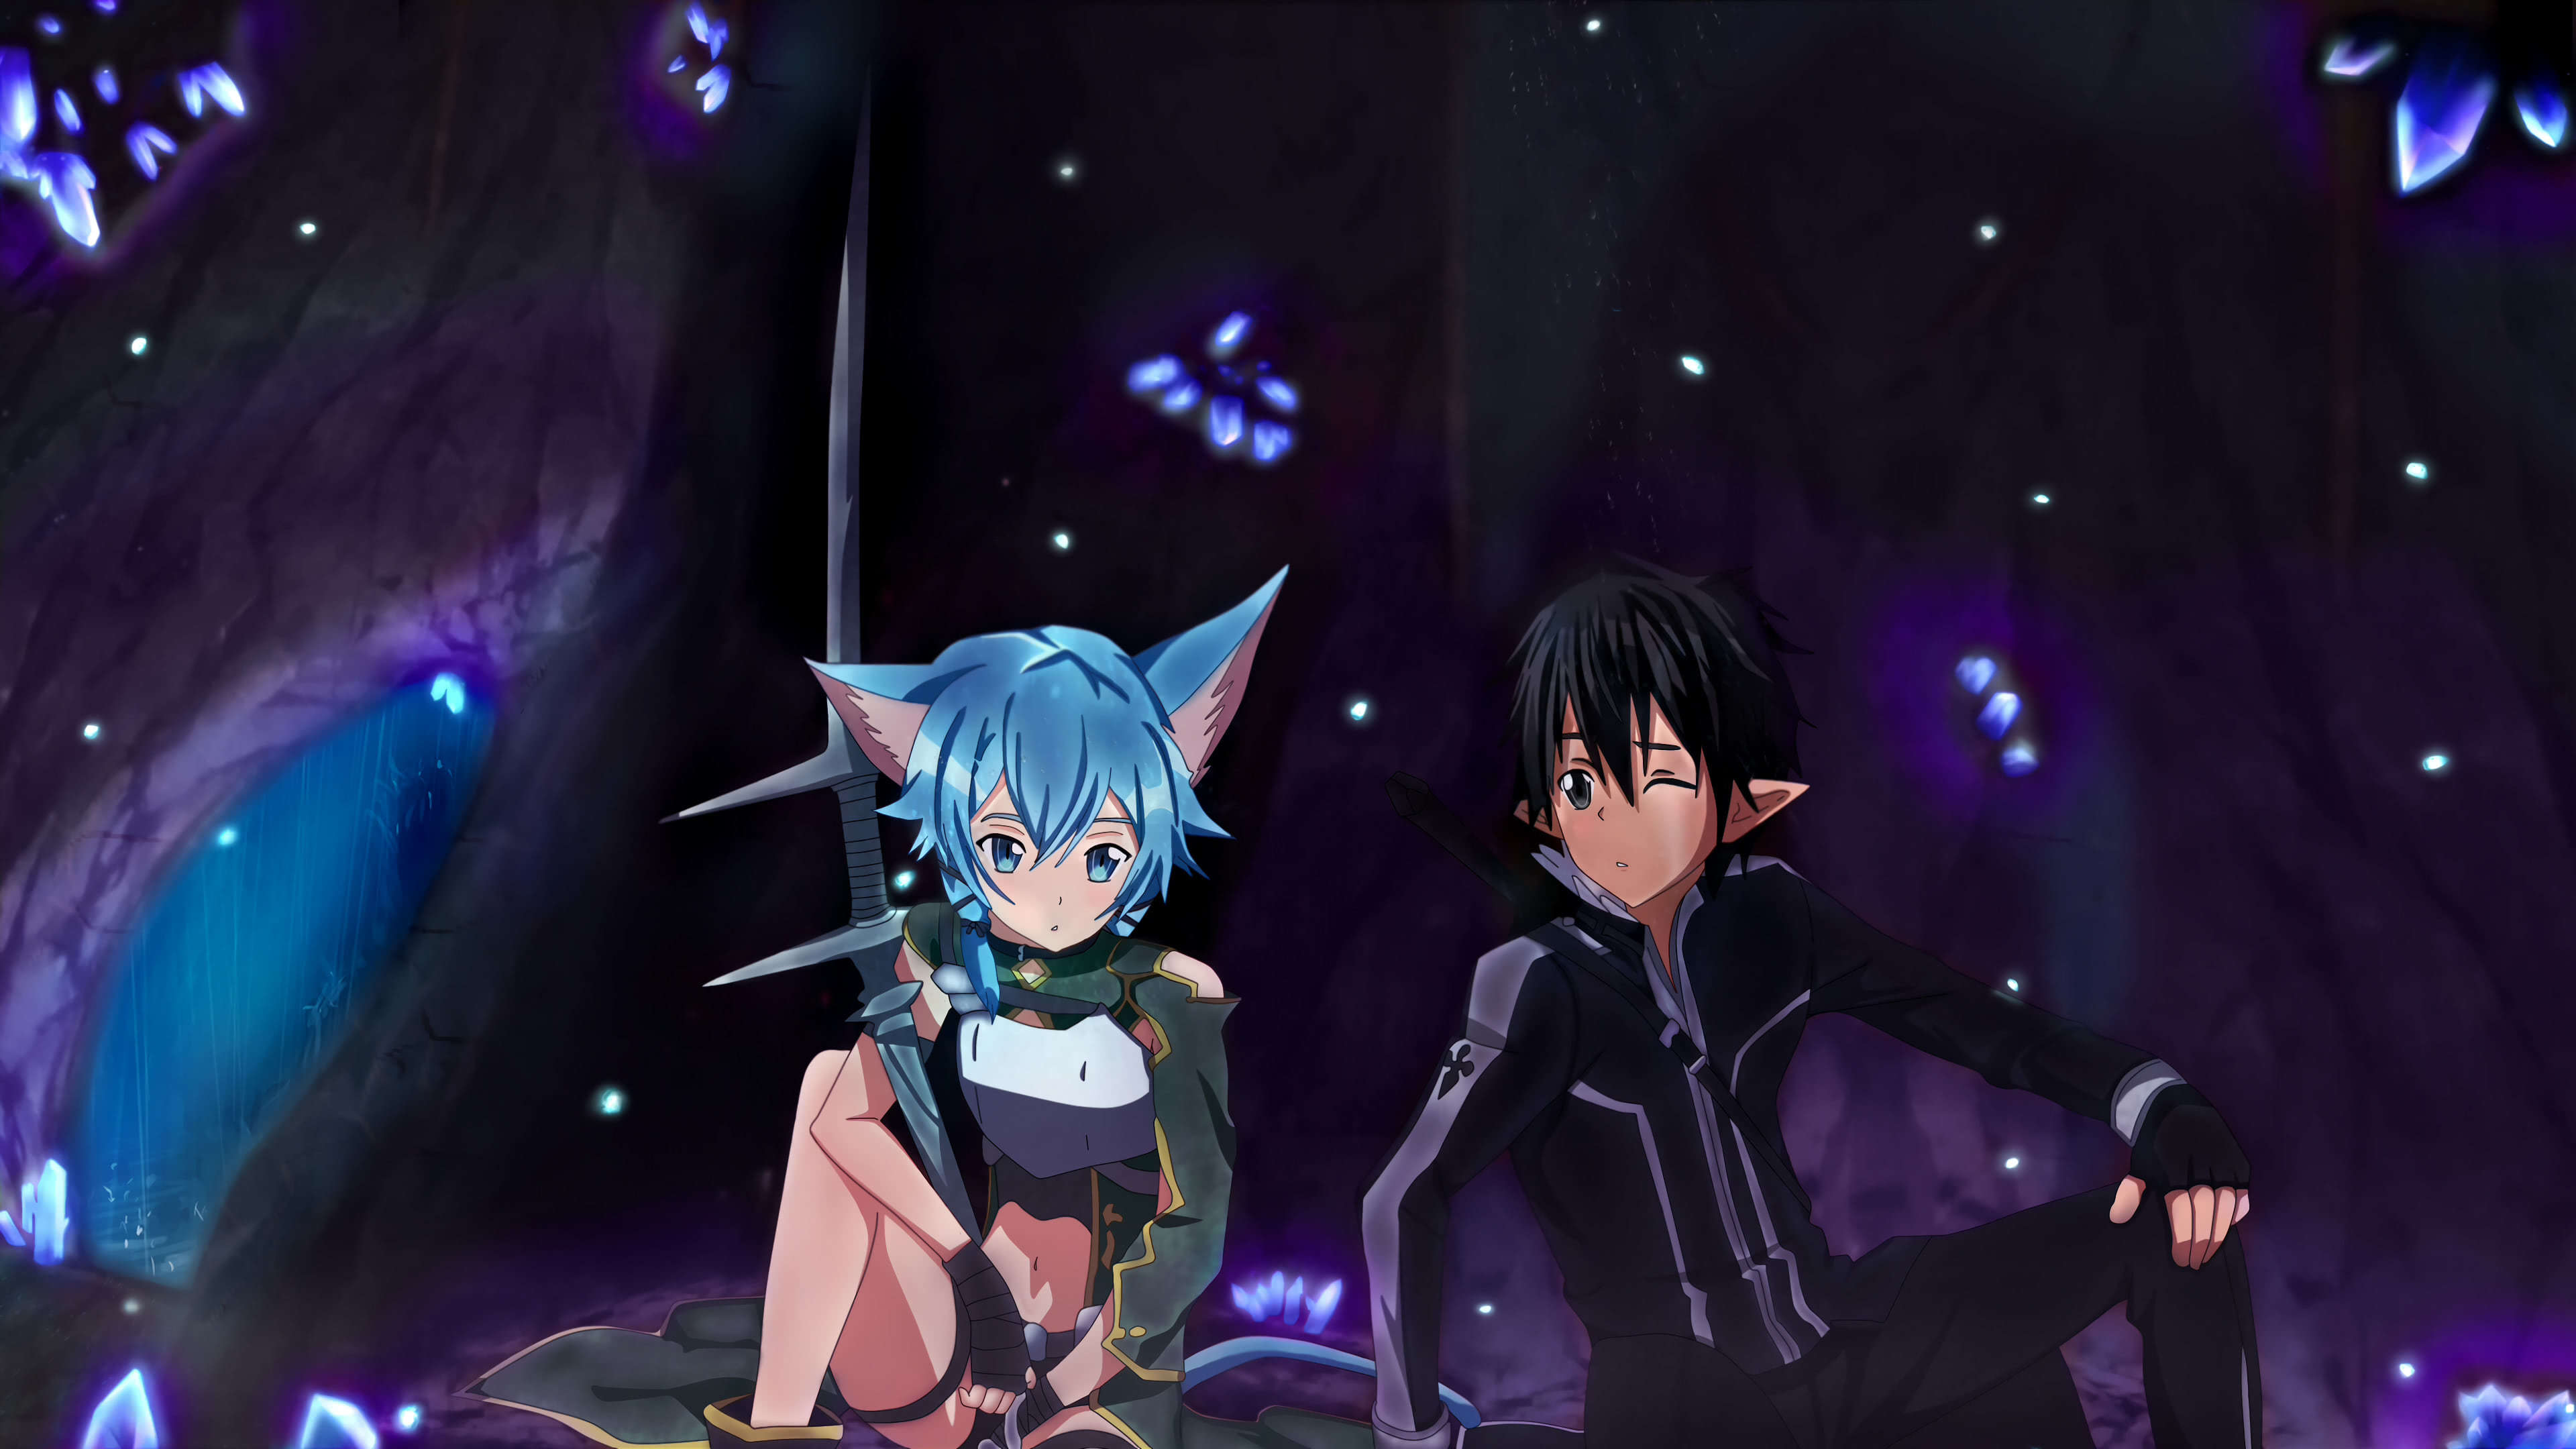 Sword Art Online Sinon And Kirito Uhd 4k Wallpaper Pixelz